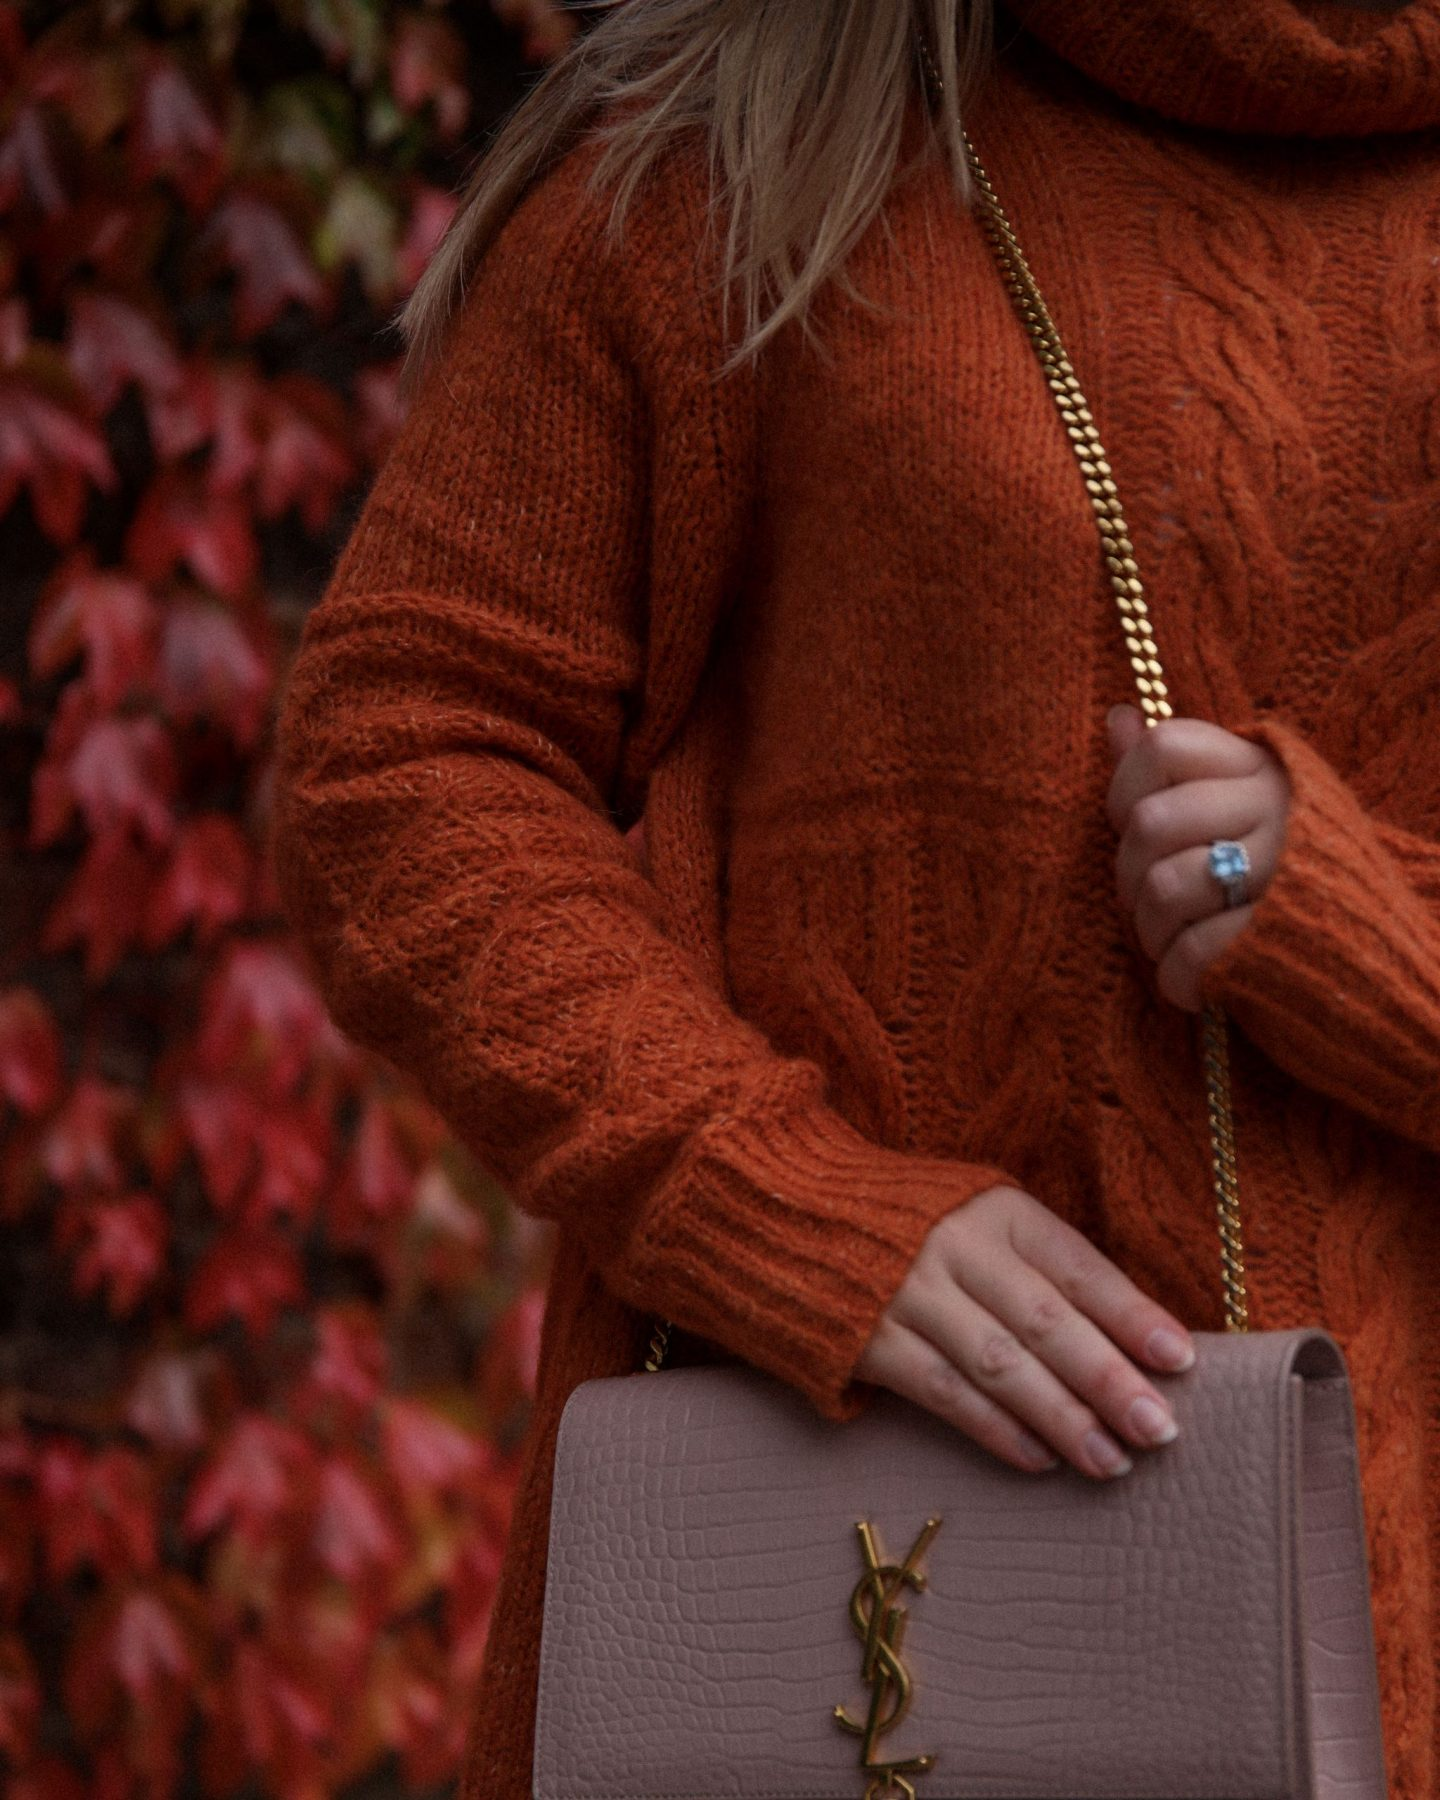 Katie Heath wearing Orange Odd Molly Mohair Knit, Katie KALANCHOE